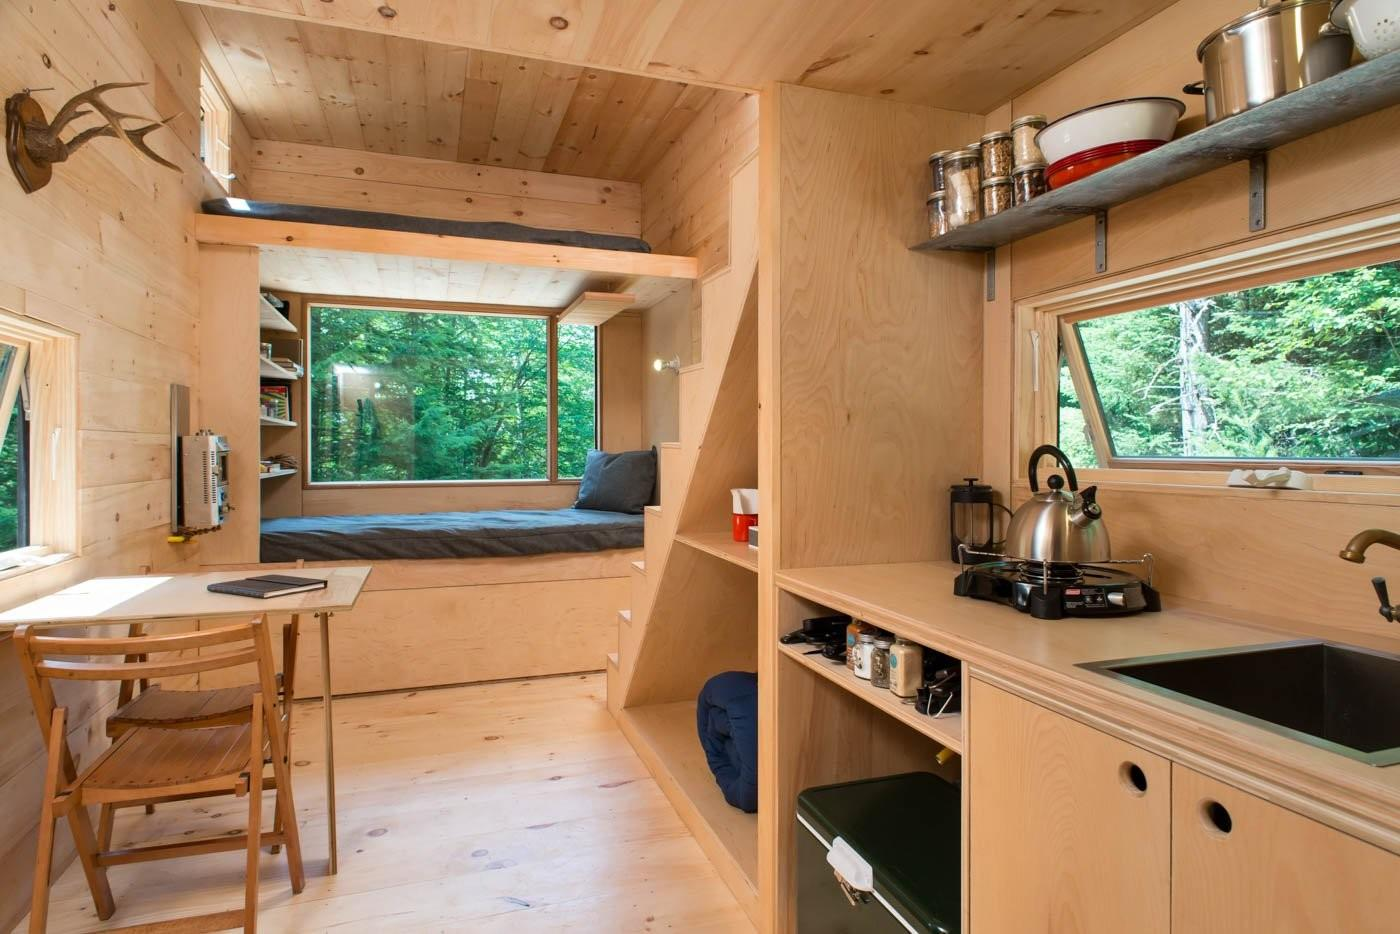 Getaway Launches Tiny Houses Outside New York City